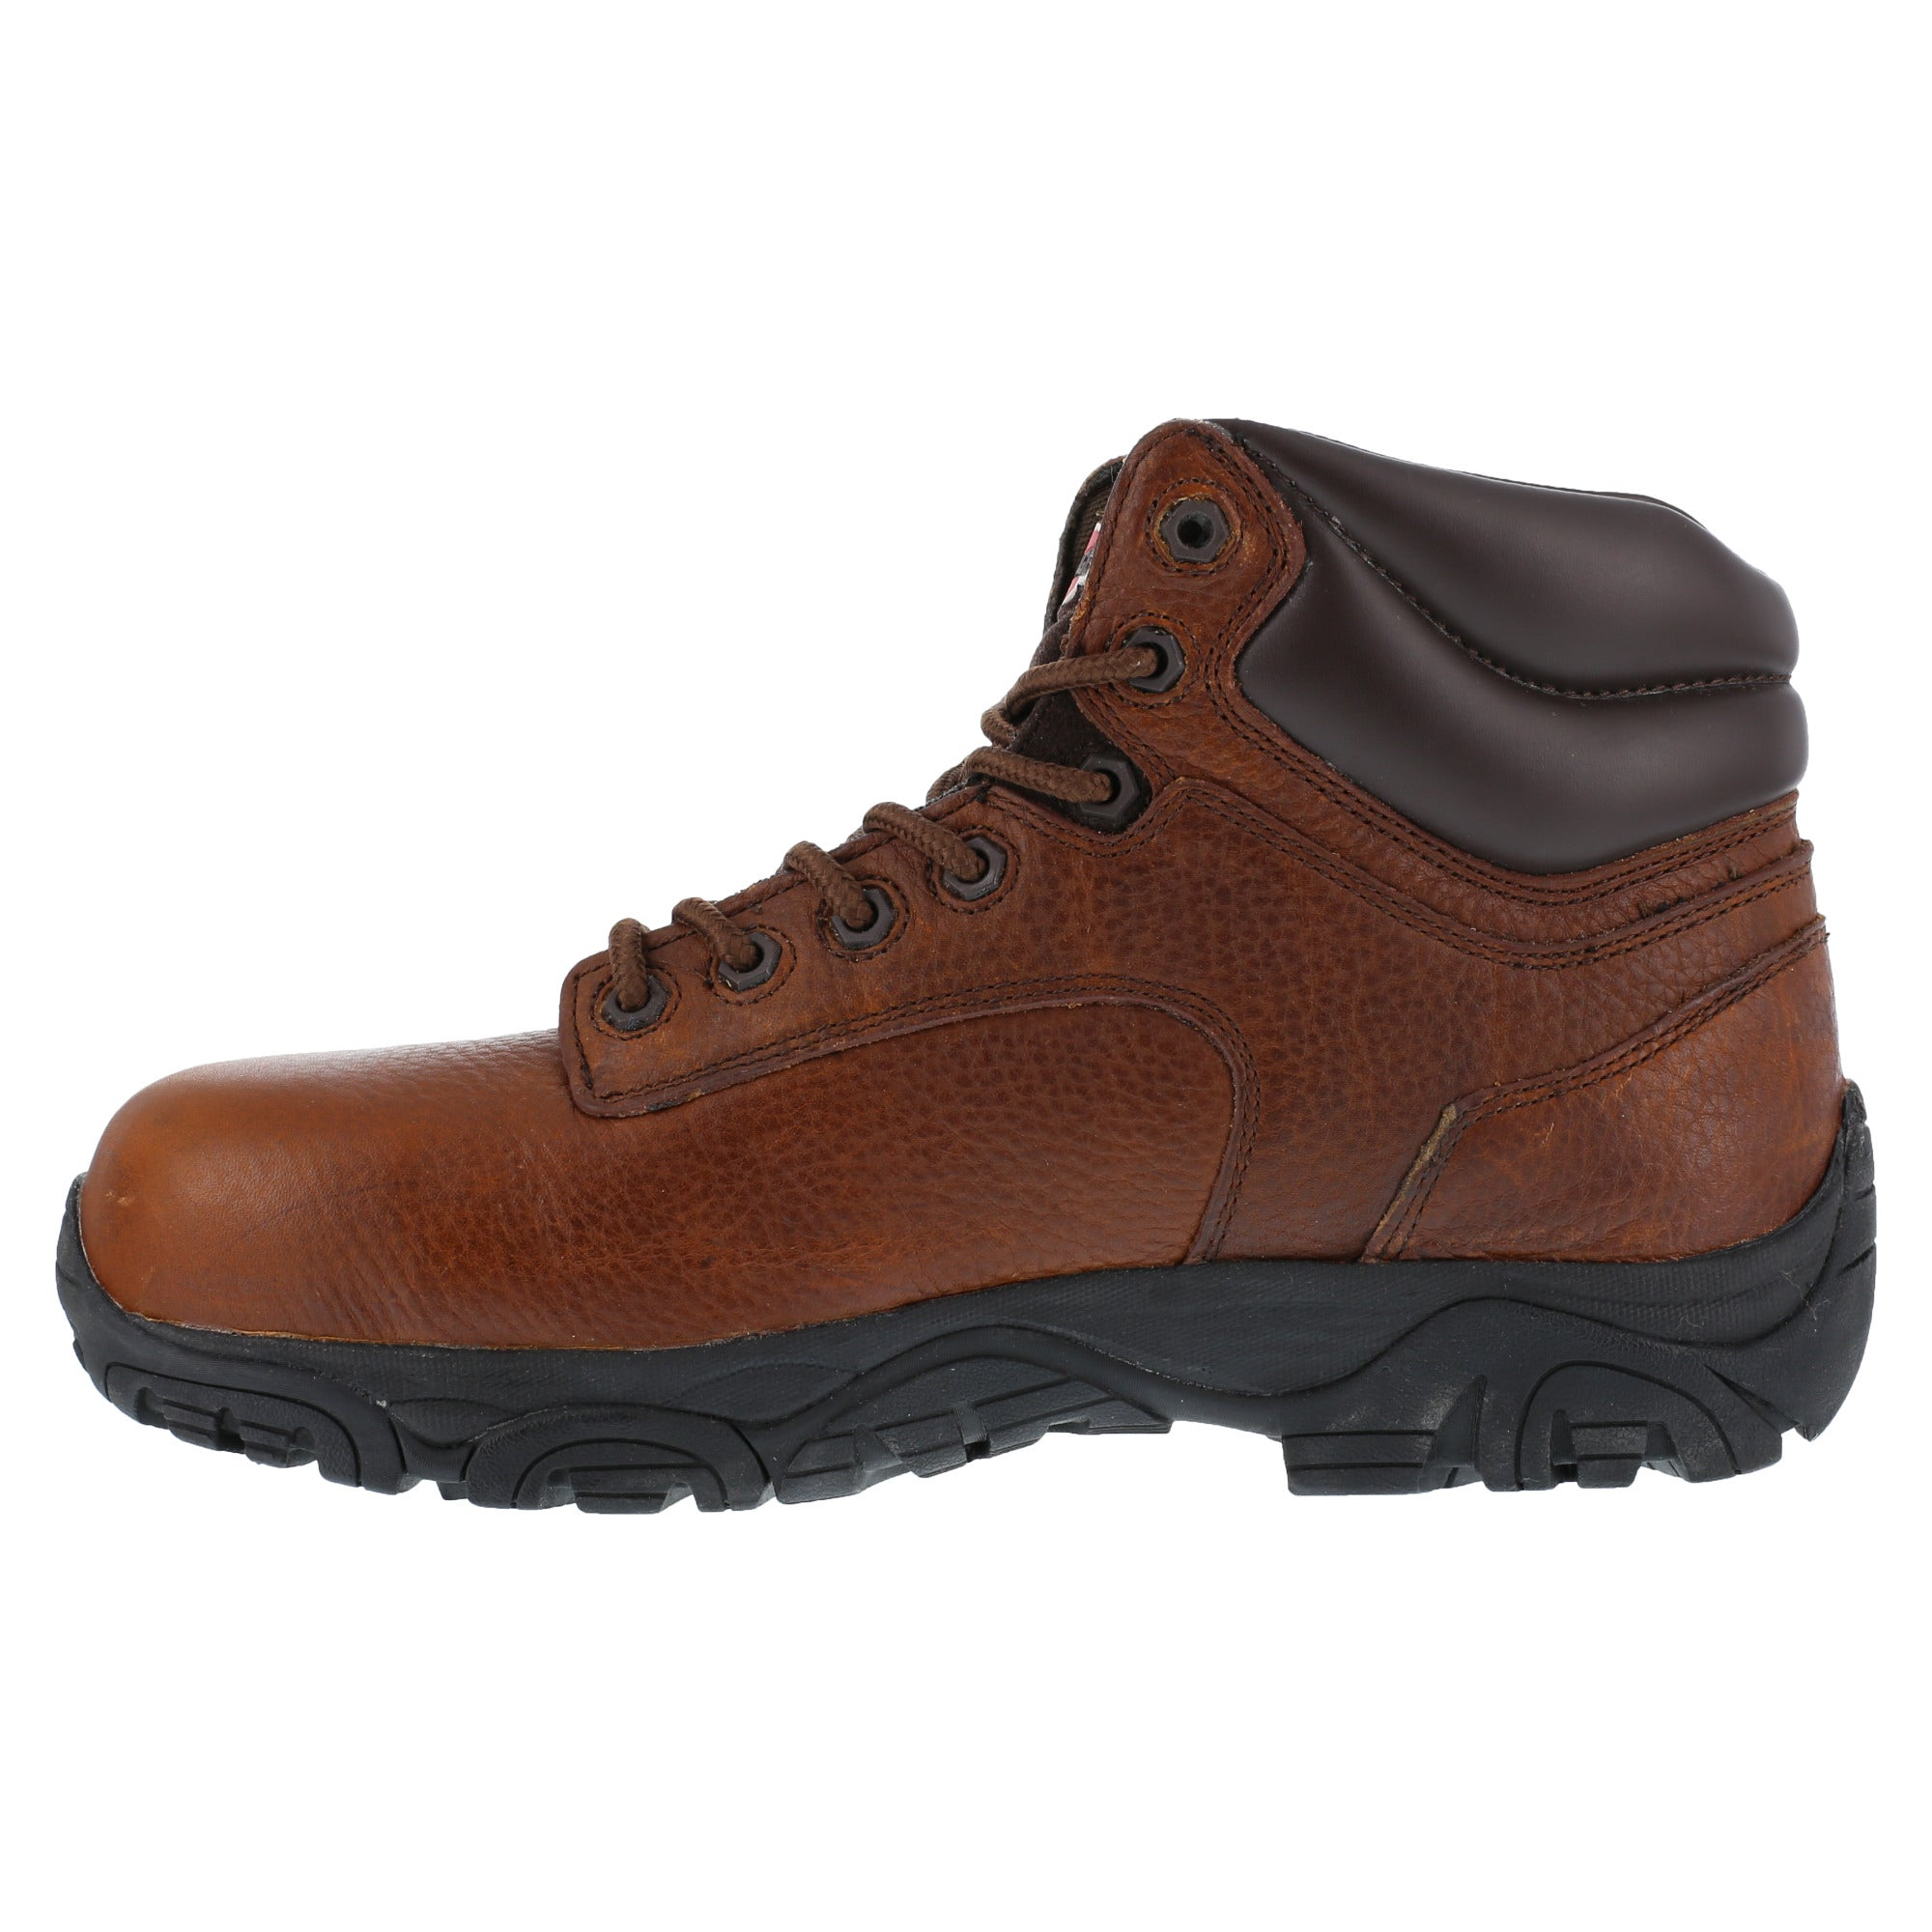 b3b4ea163b6 Iron Age Mens Brown Leather 6in Work Boots Trencher Composite Toe ...